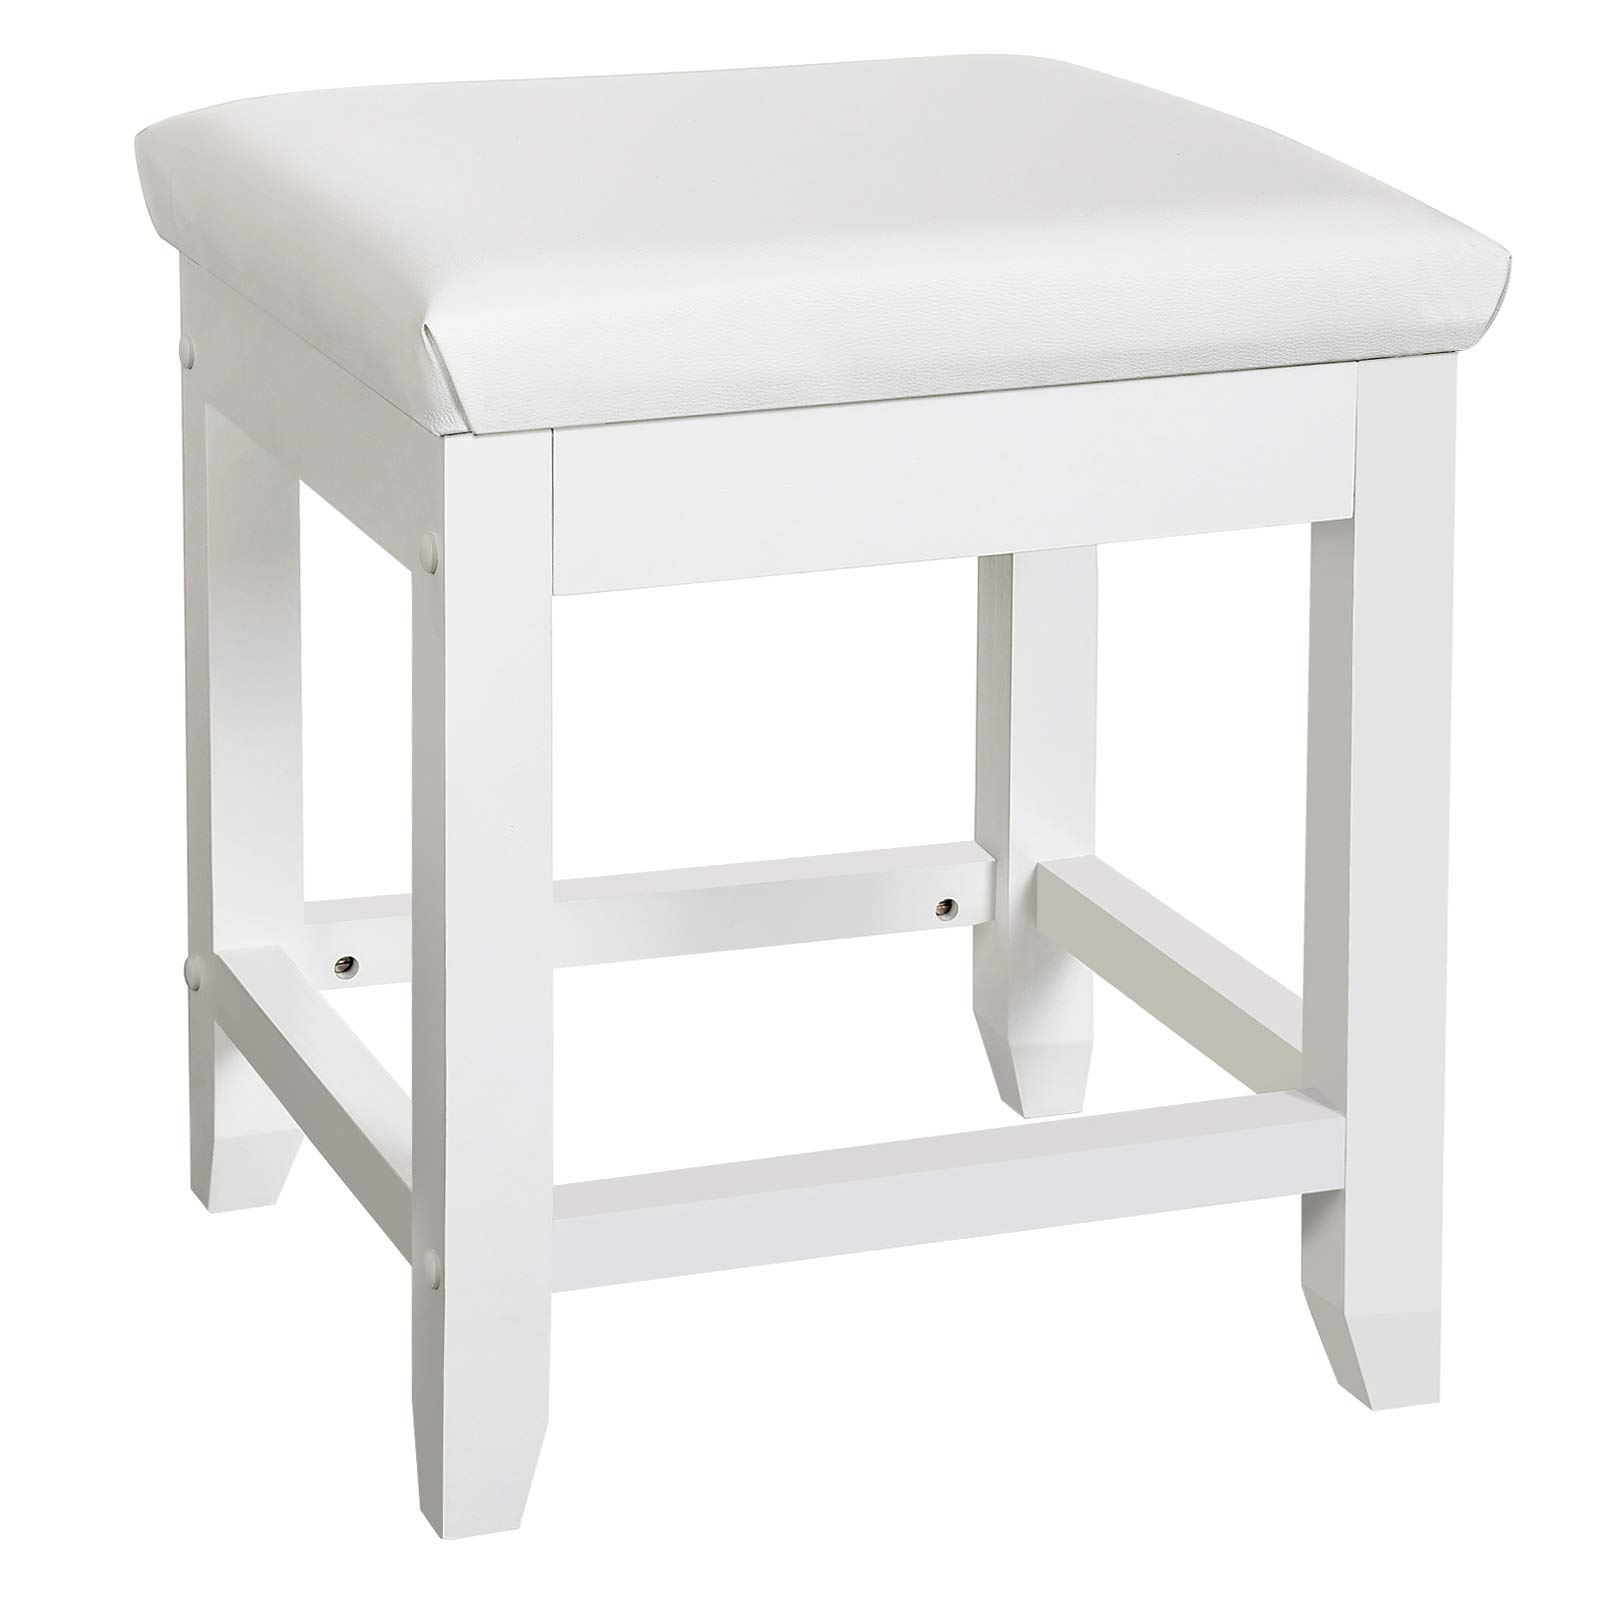 SONGMICS Vanity Stool PU Leather Makeup Dressing Stool with Rubberwood Legs Modern Stool White URDS52W by SONGMICS